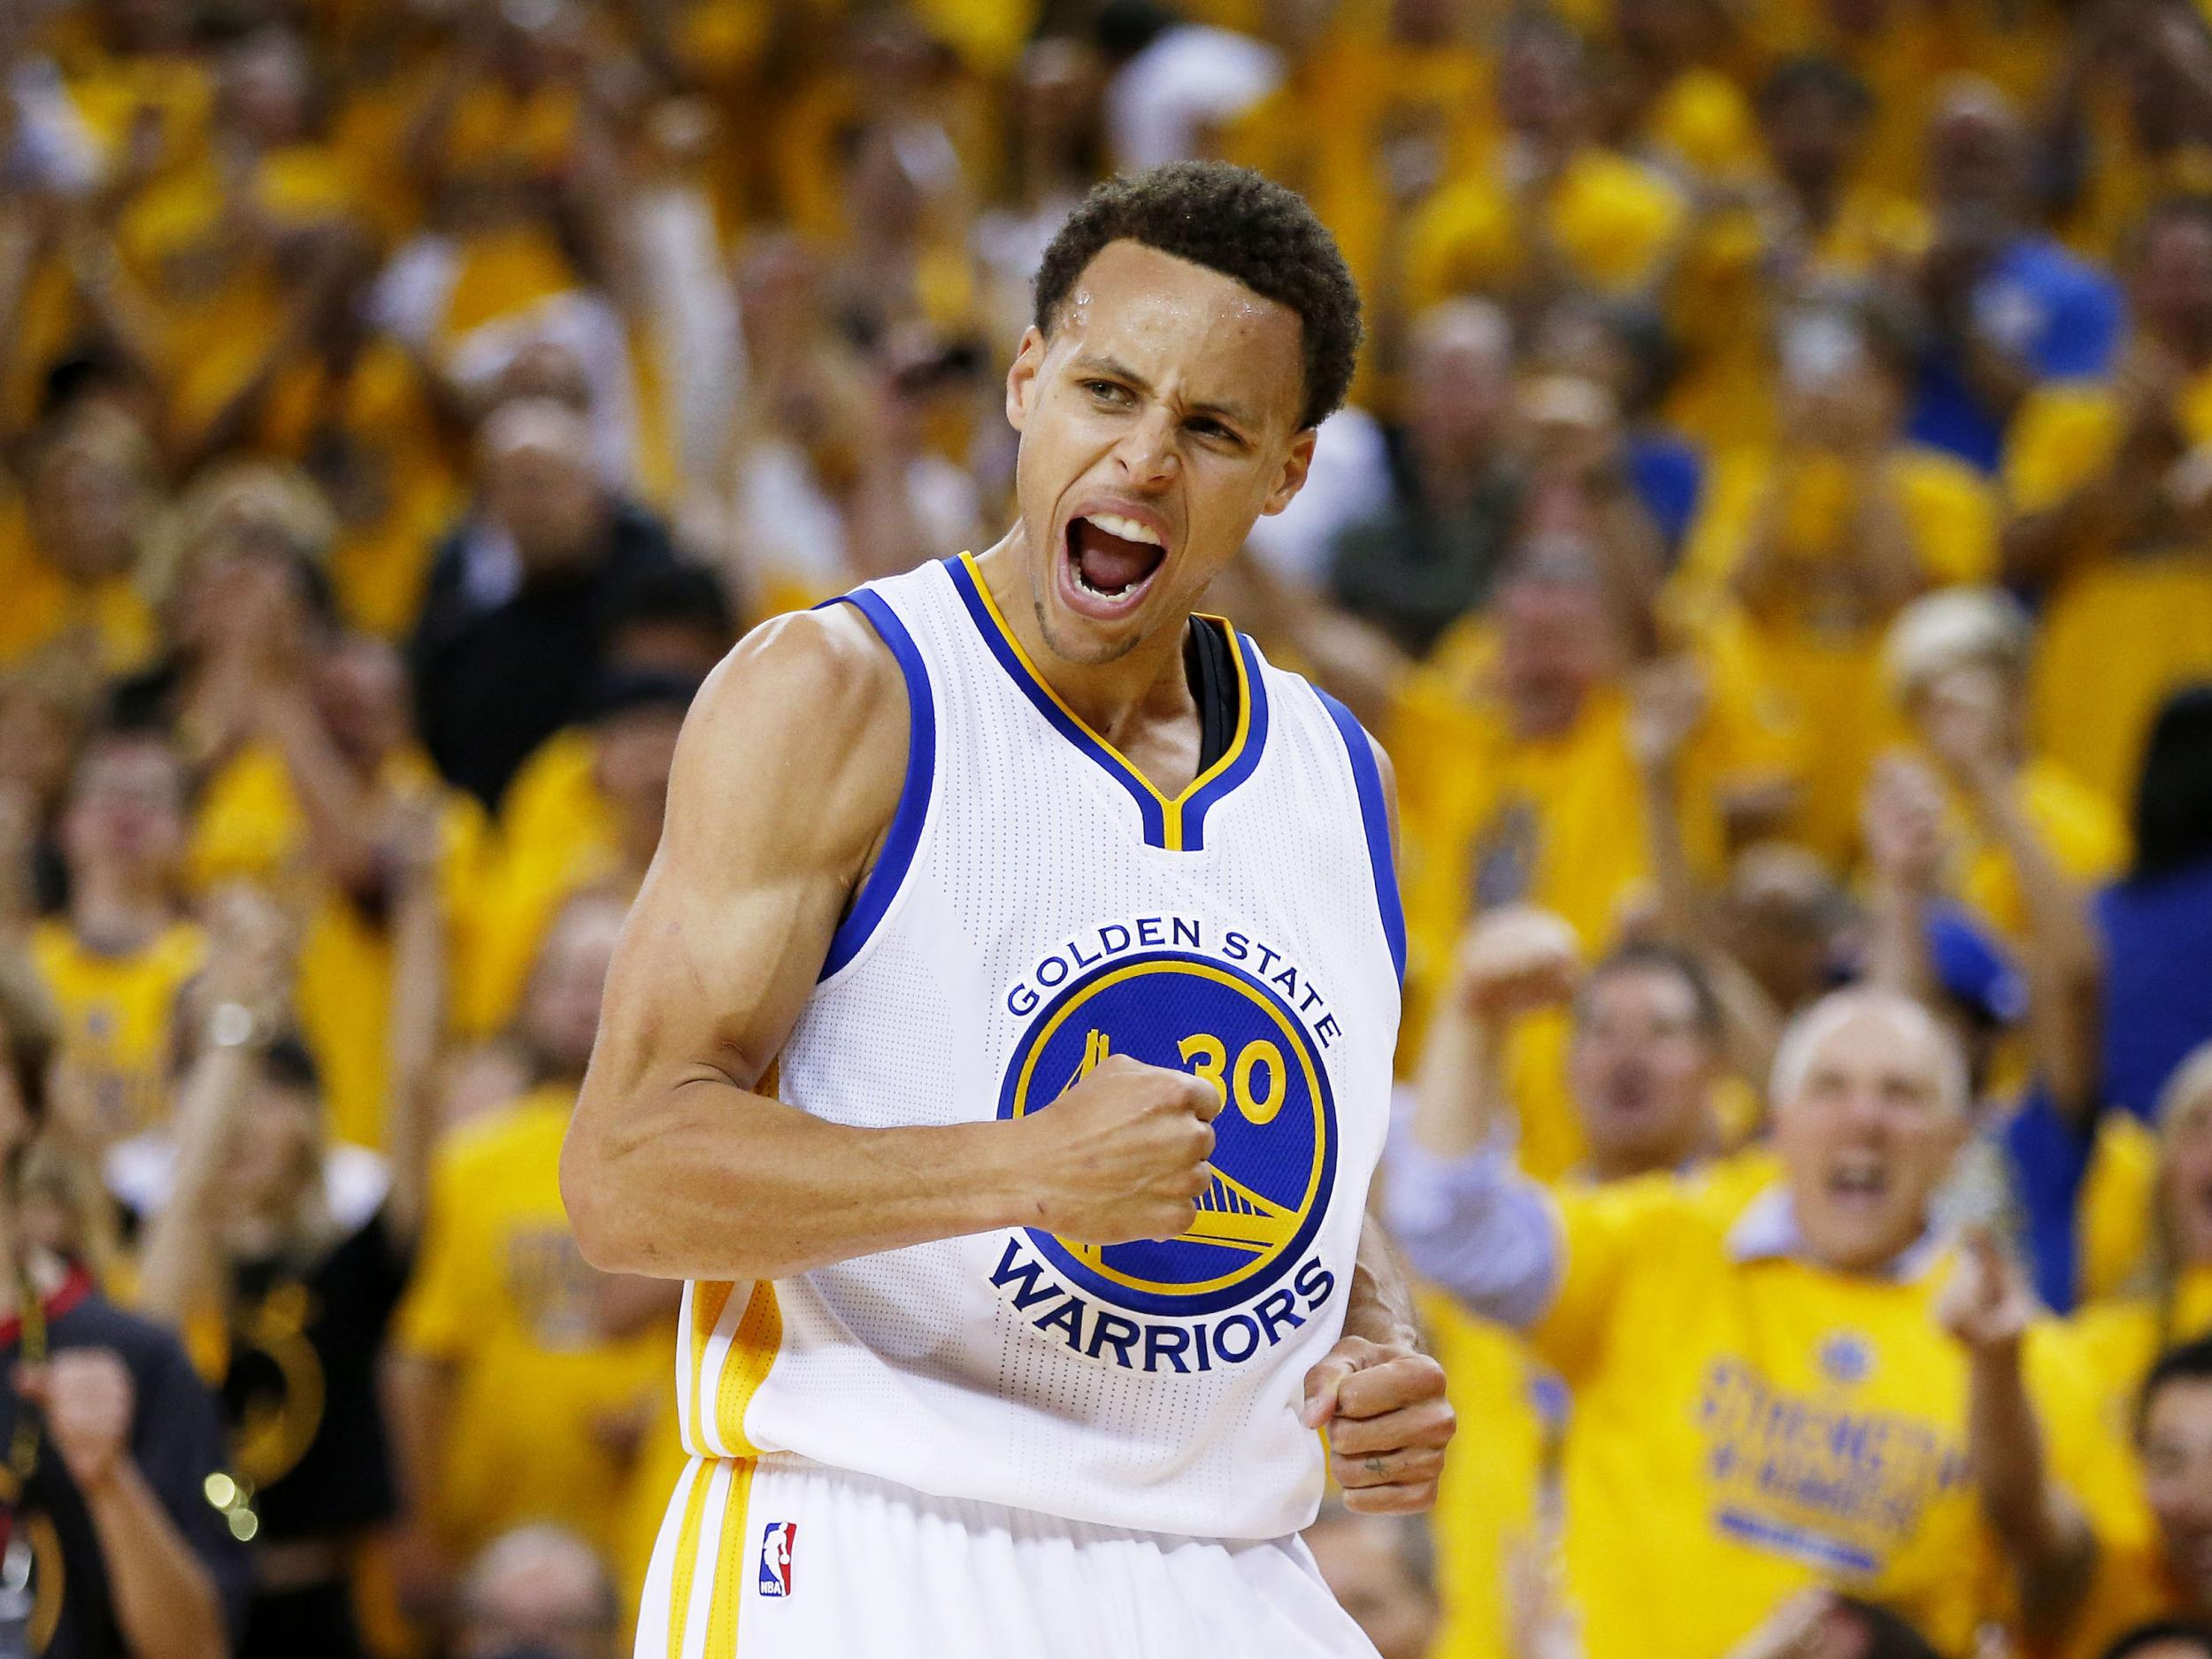 Donald Trump uninvites Stephen Curry to the White House even